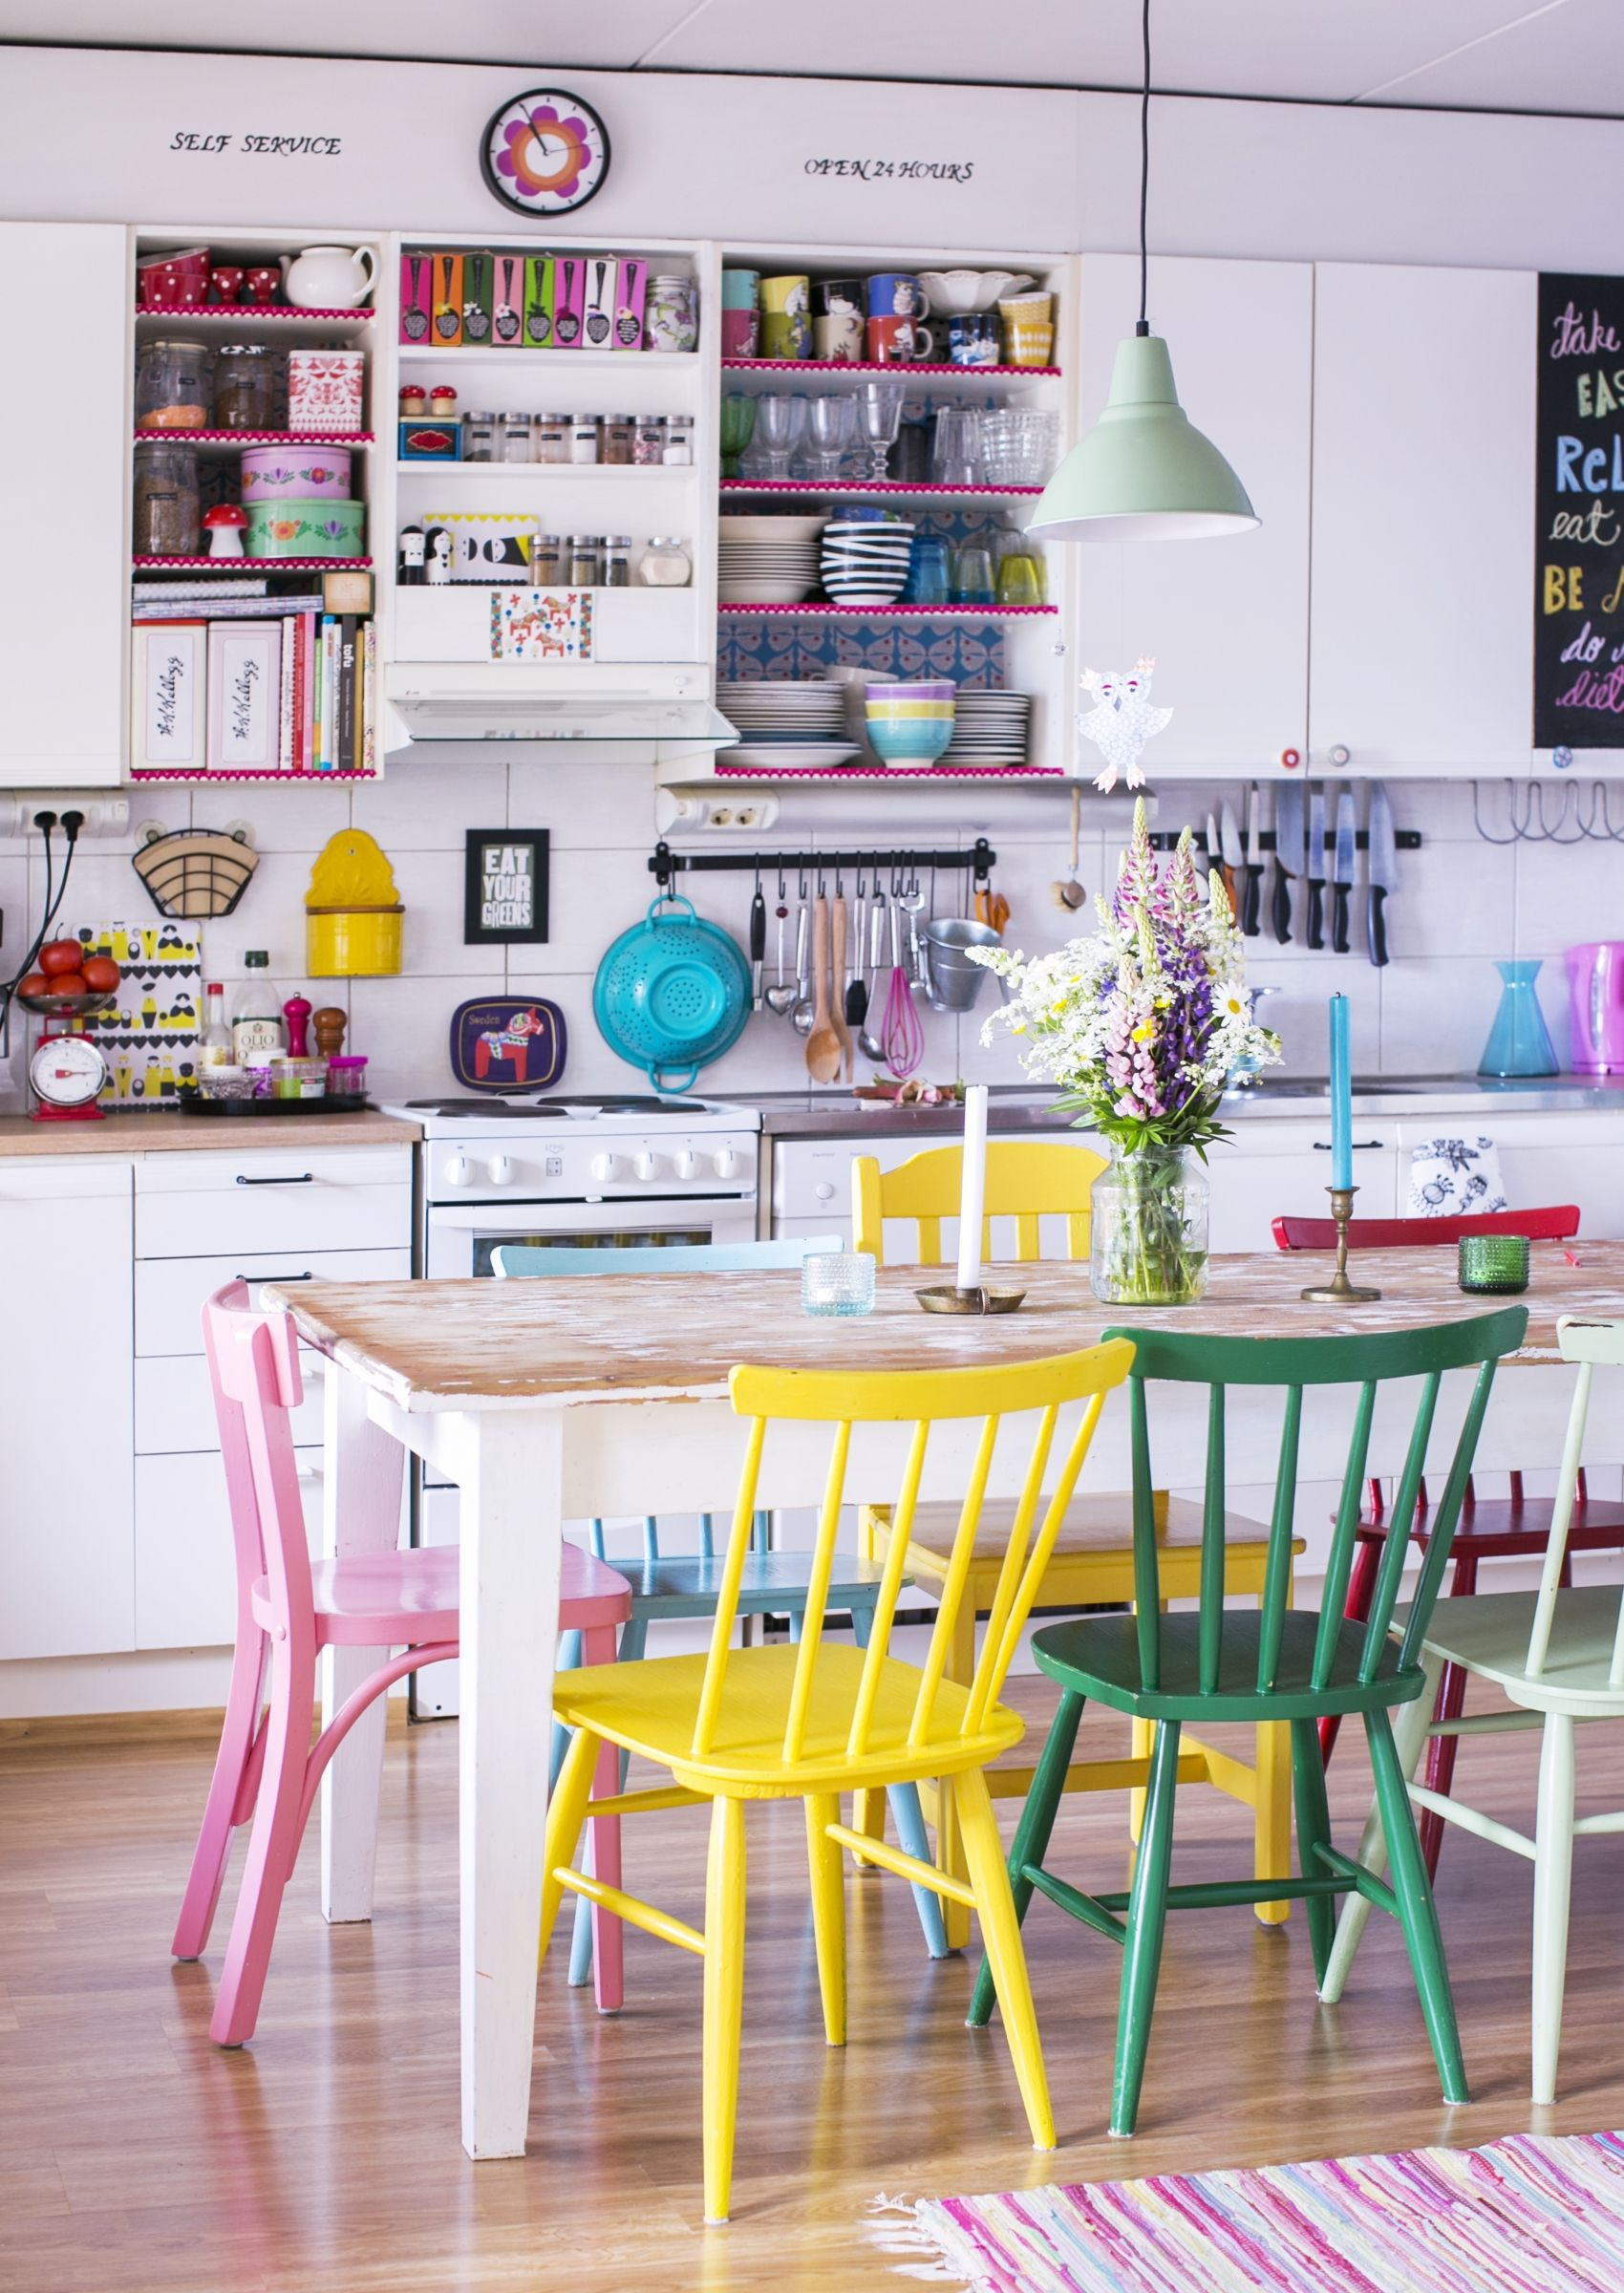 Love The Brightly Colored Chairs In This Kitchen Dining Space!